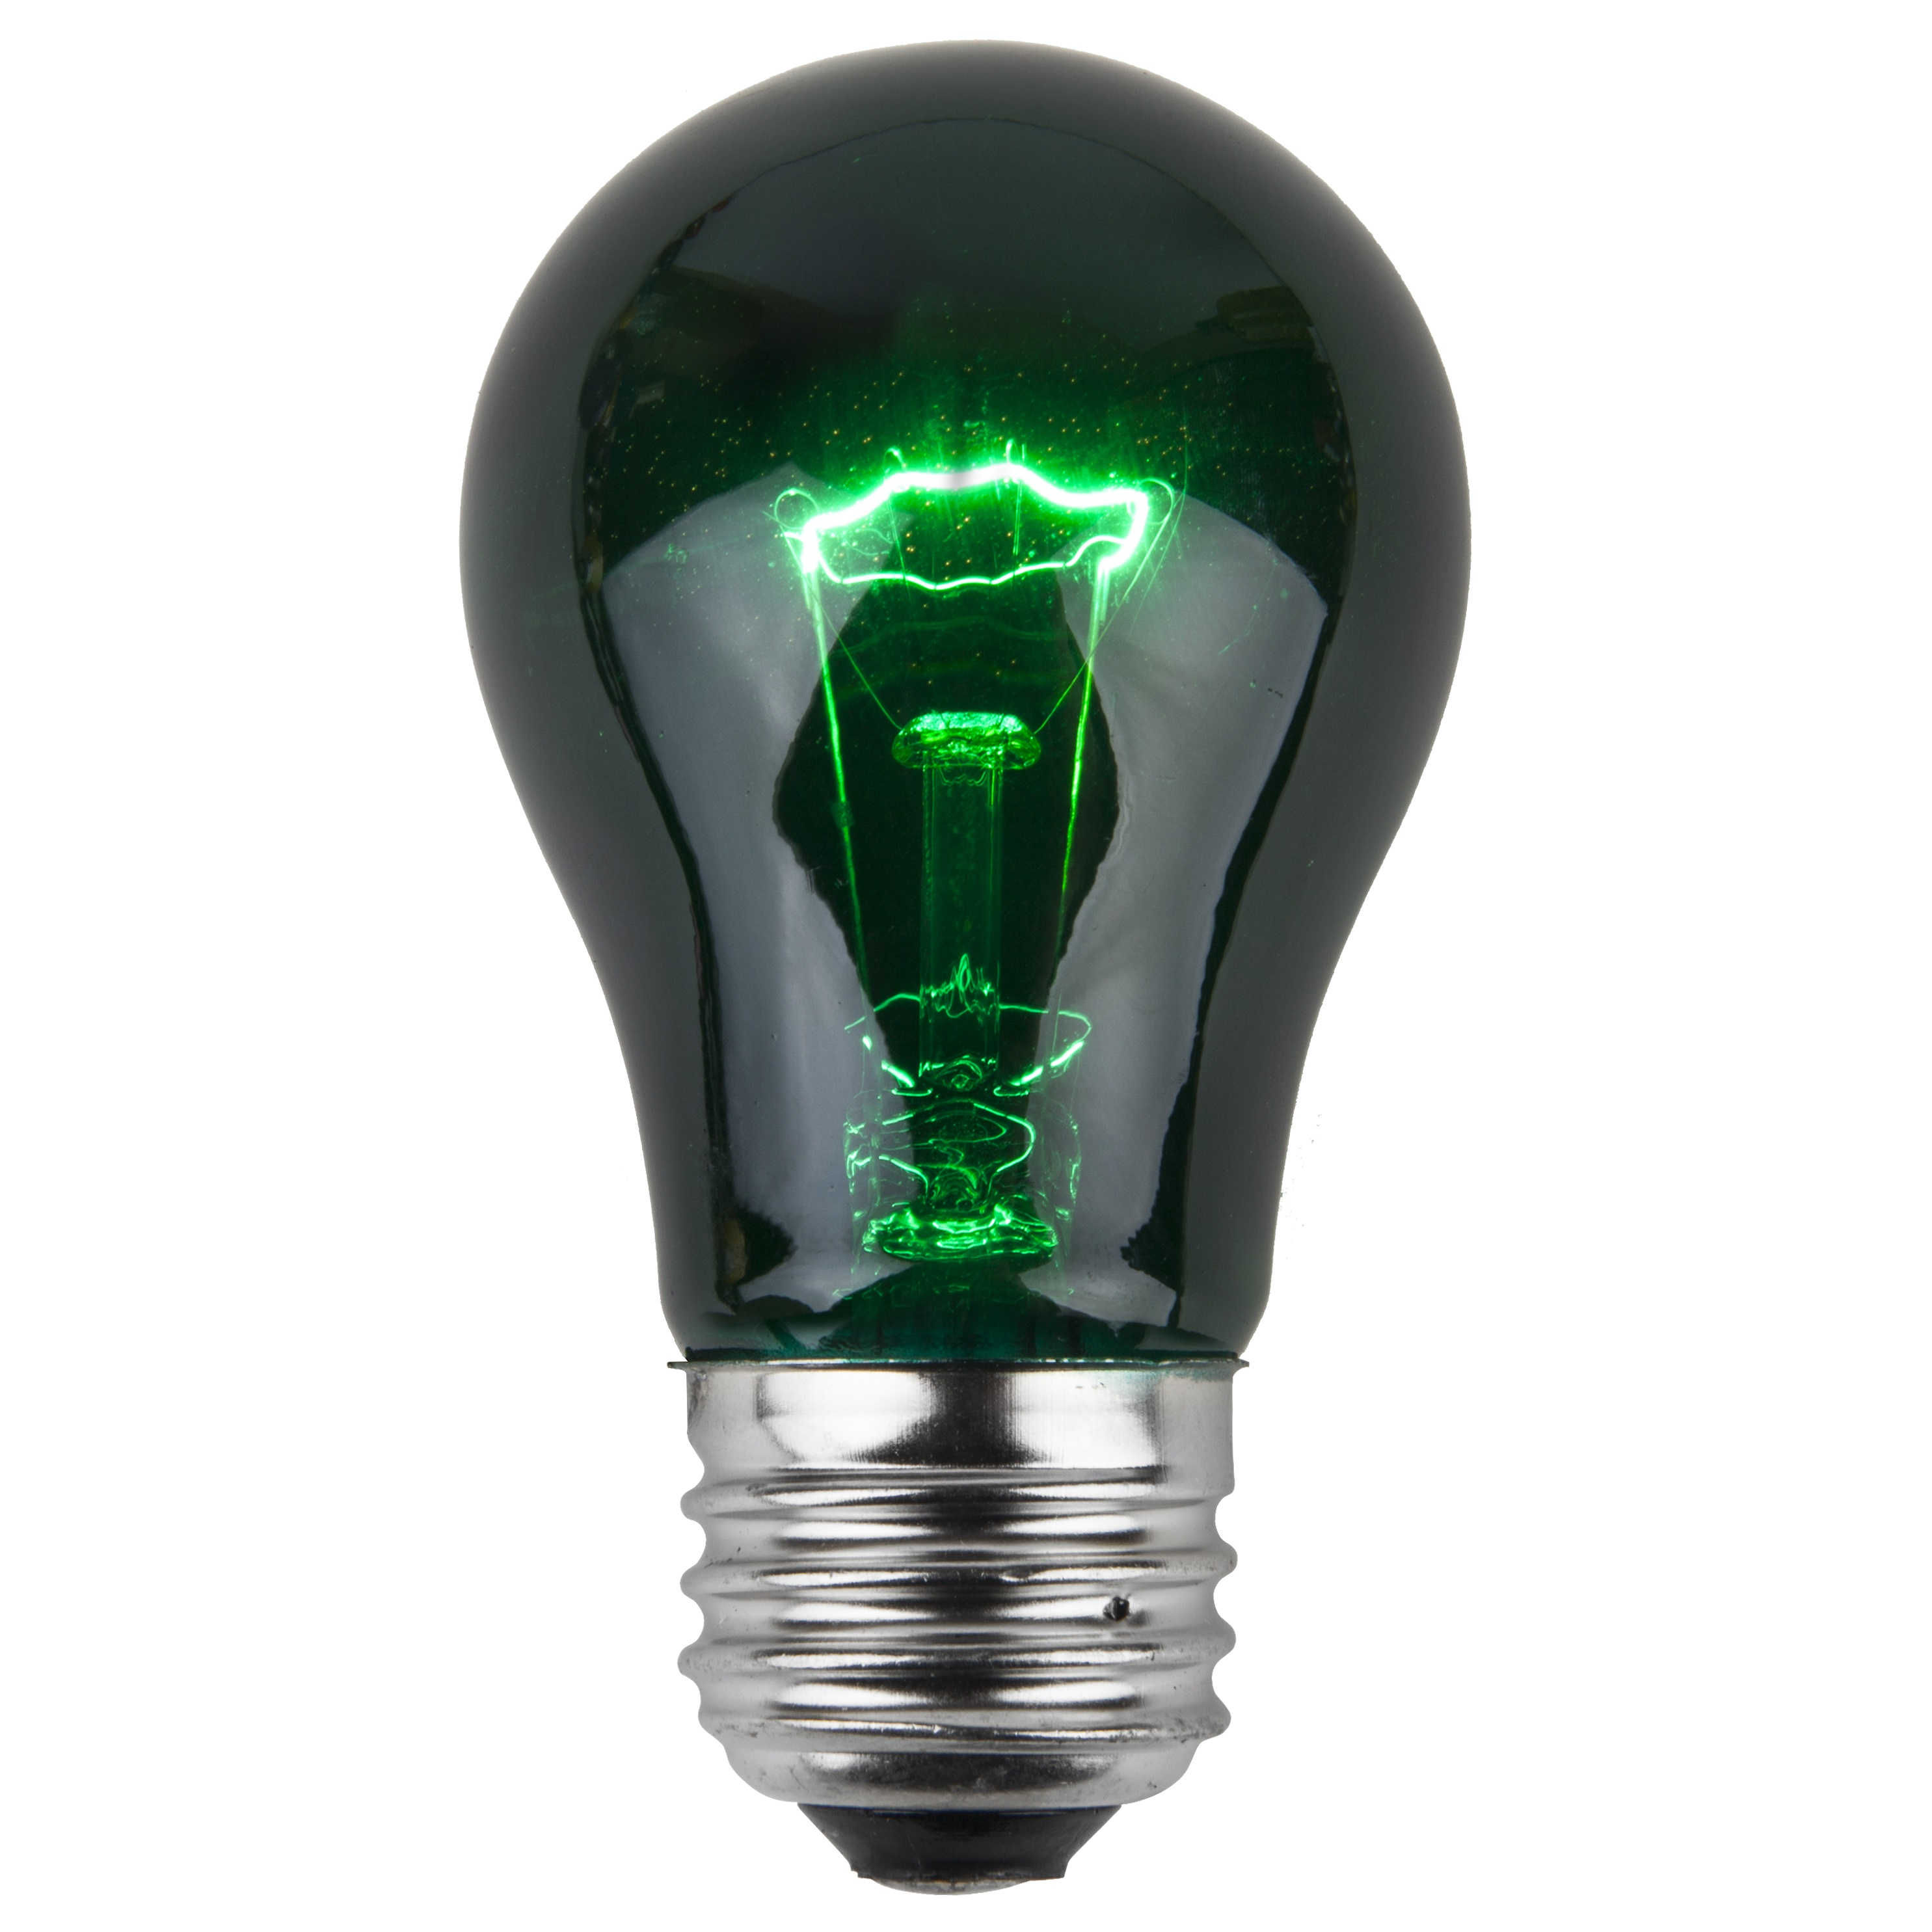 A15 Green Transparent Incandescent Incandescent Bulb